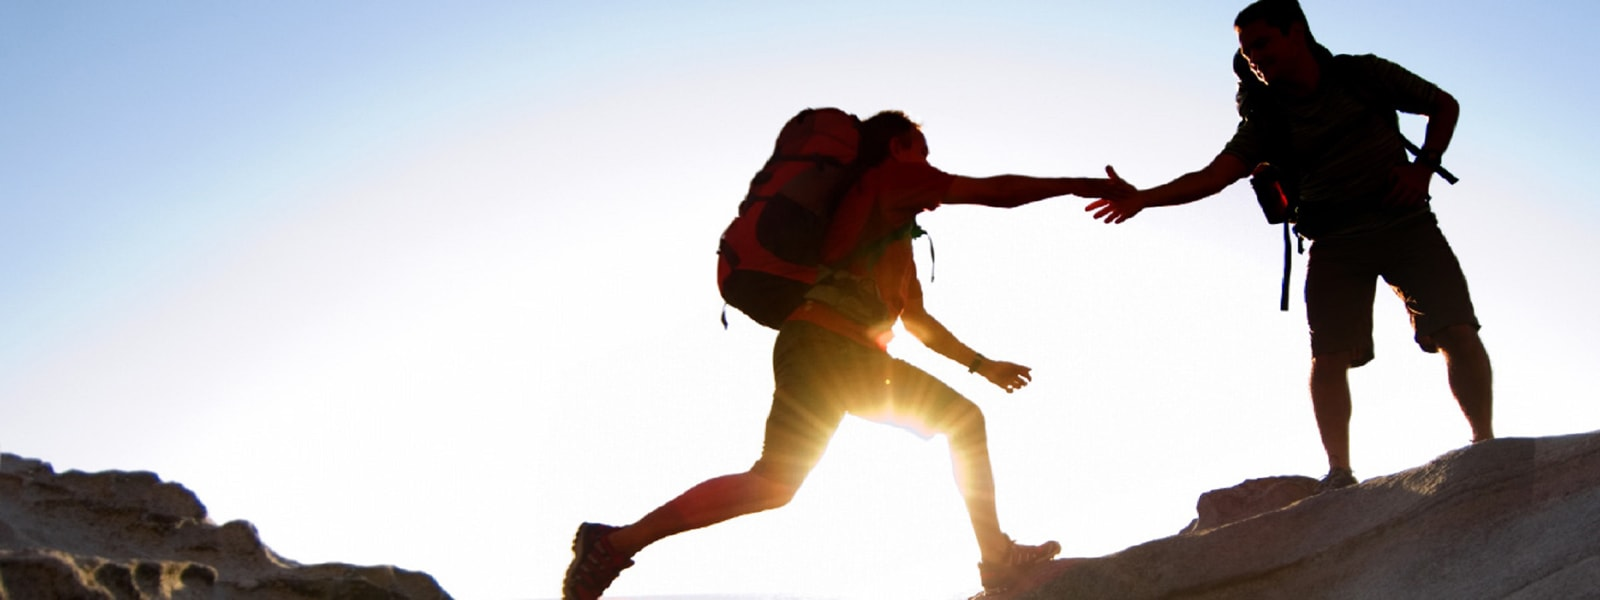 A backpacker in a craggy landscape reaches out to catch the hand of his leaping partner.